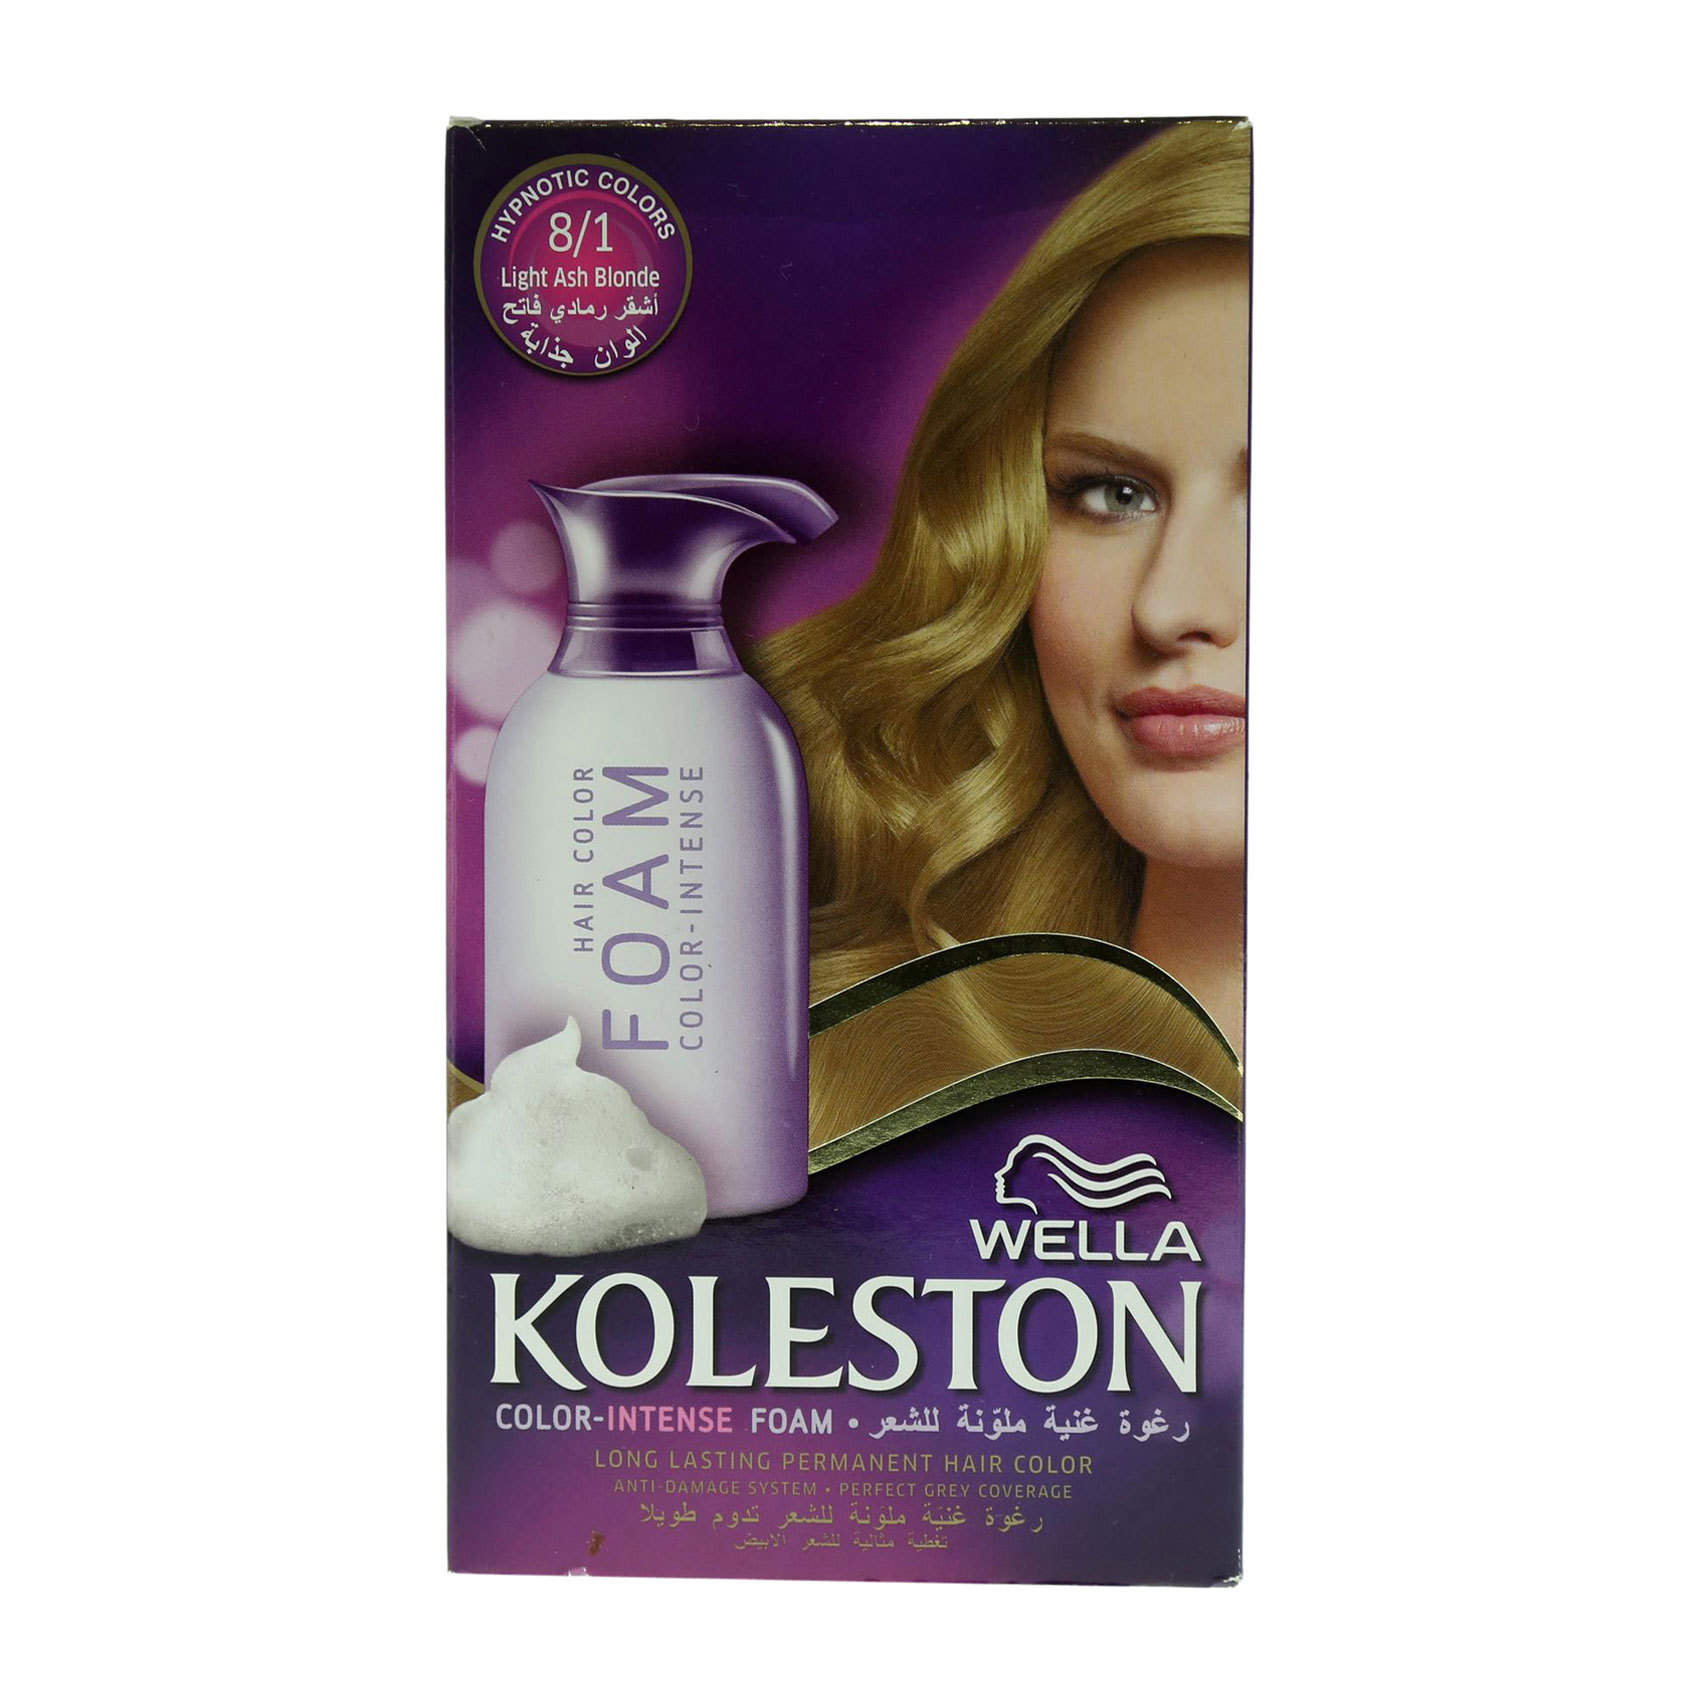 KOLESTON FOAM LIGHT ASH BLONDE 8/1